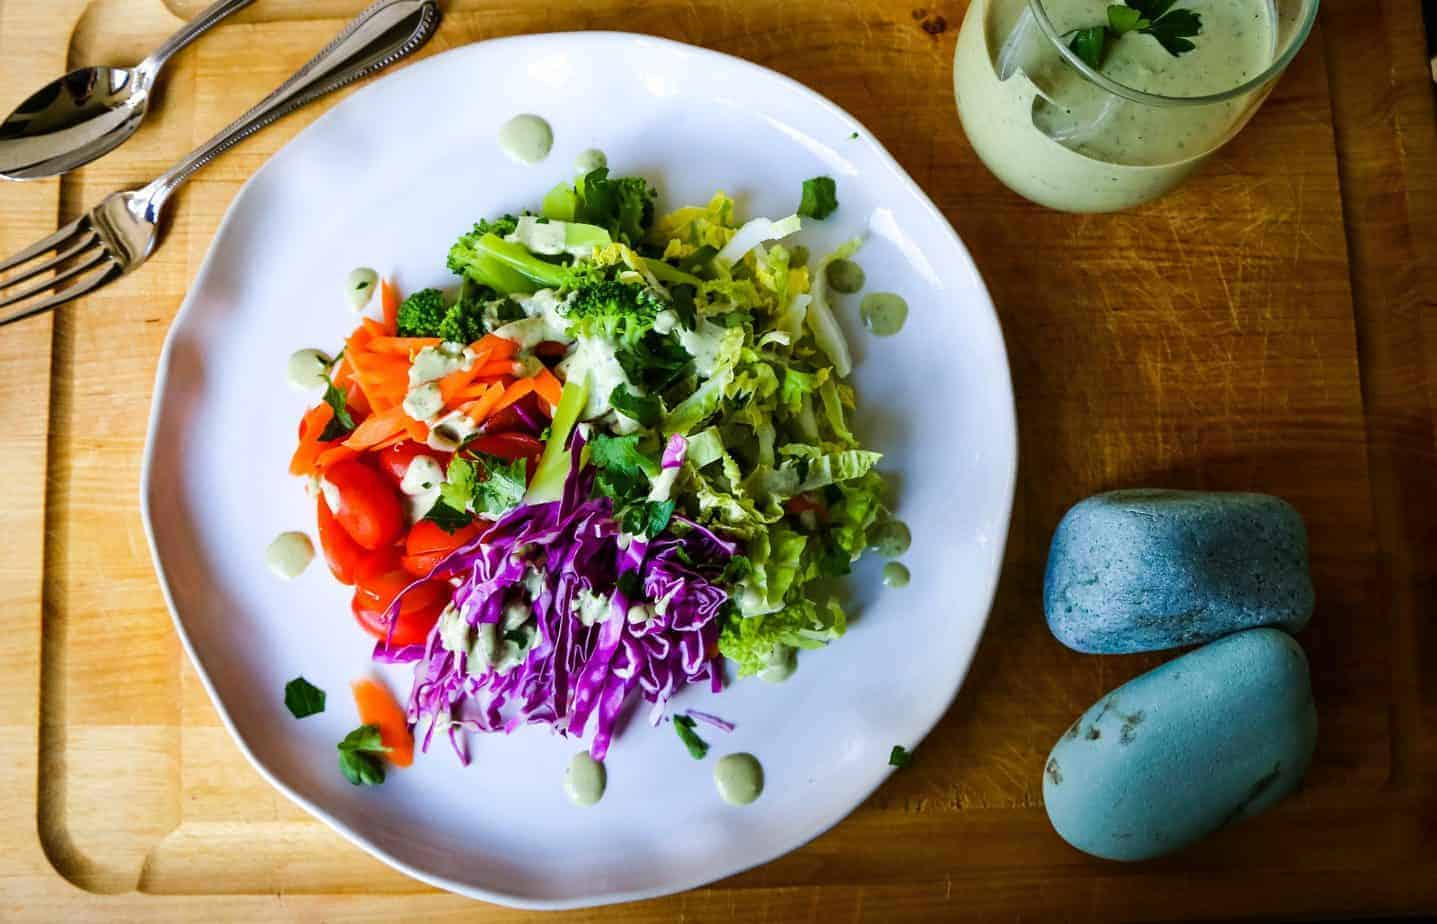 rainbow salad and green goddess dressing on a plate